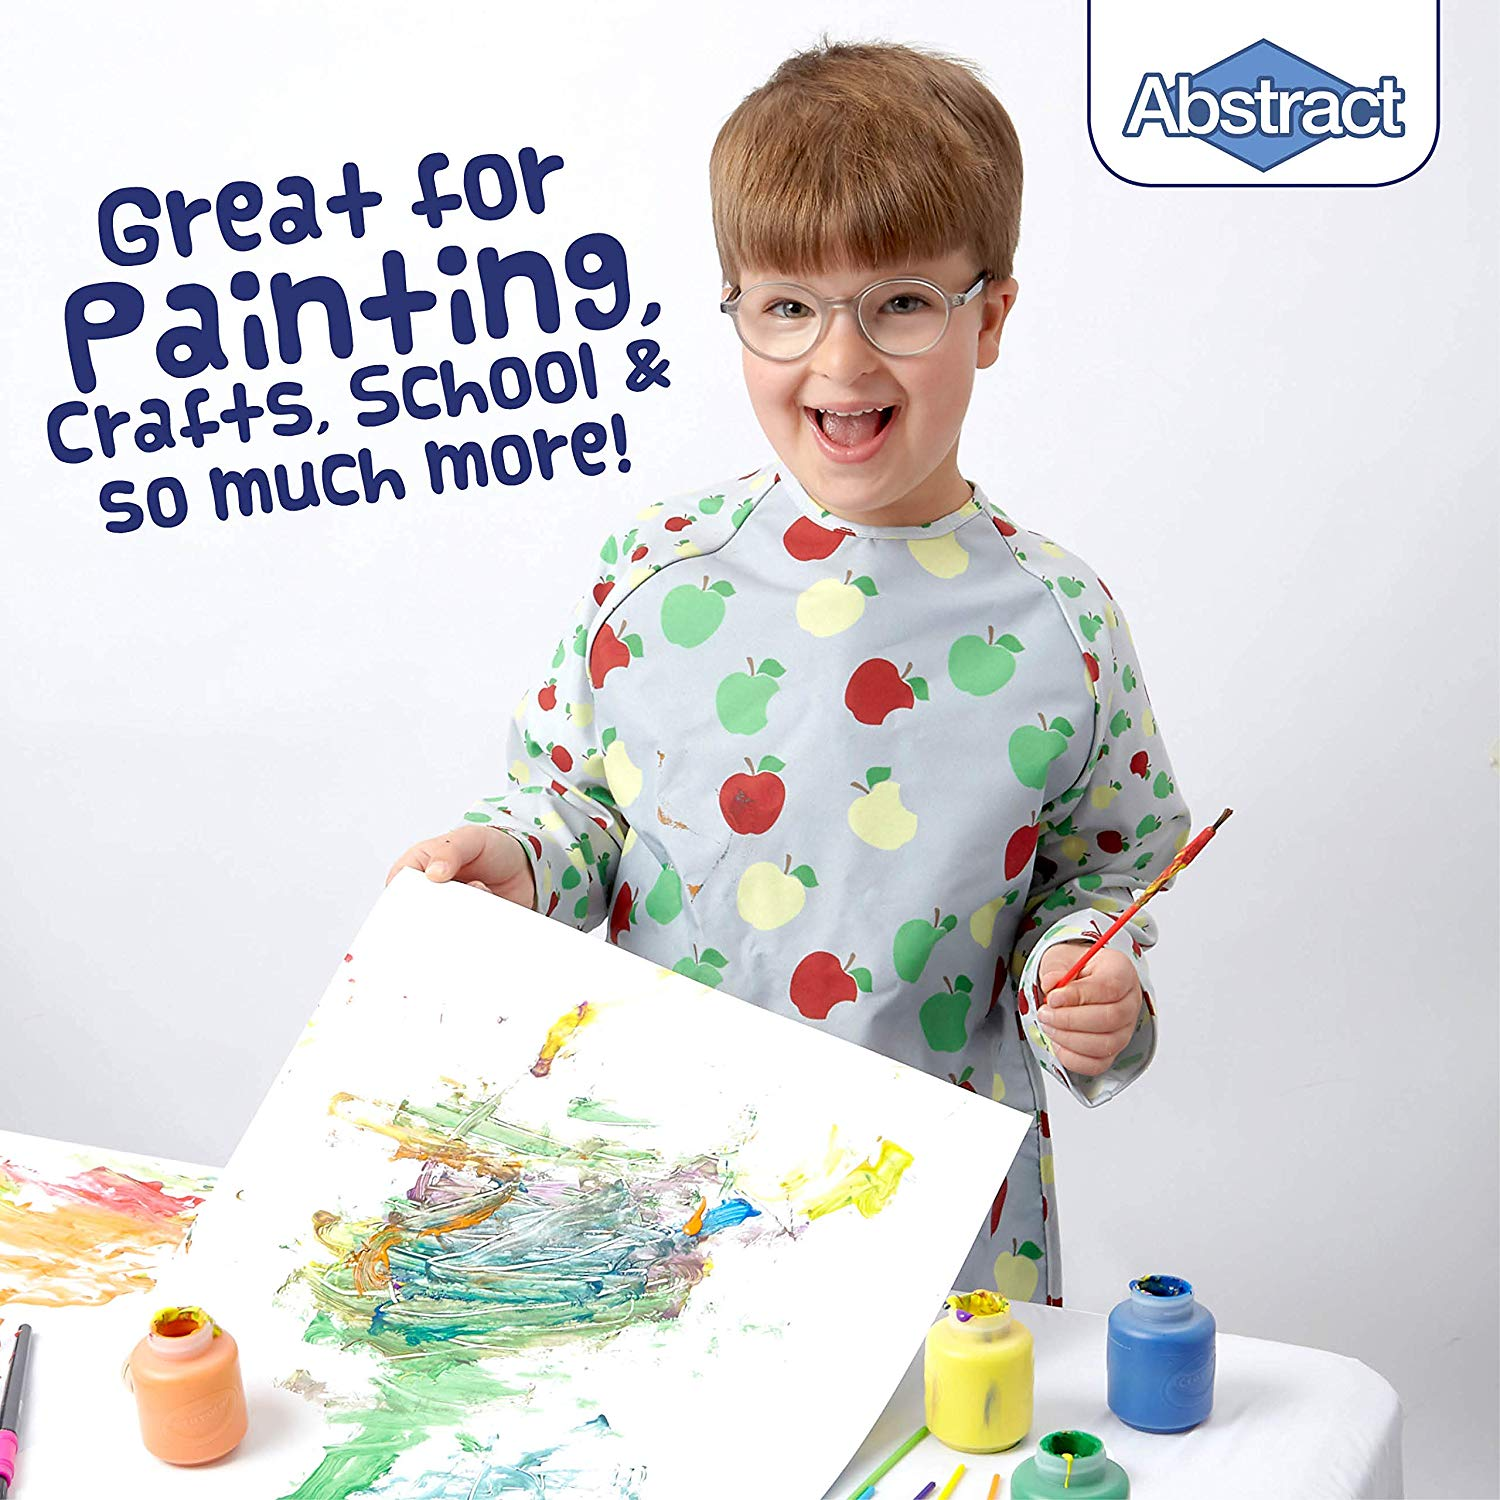 Feeding and More Abstract Kids Art Smock Apron Premium Quality Microfiber with Vinyl Lining Apple Print Long Sleeve Waterproof Bib for Painting Small 2 Pockets